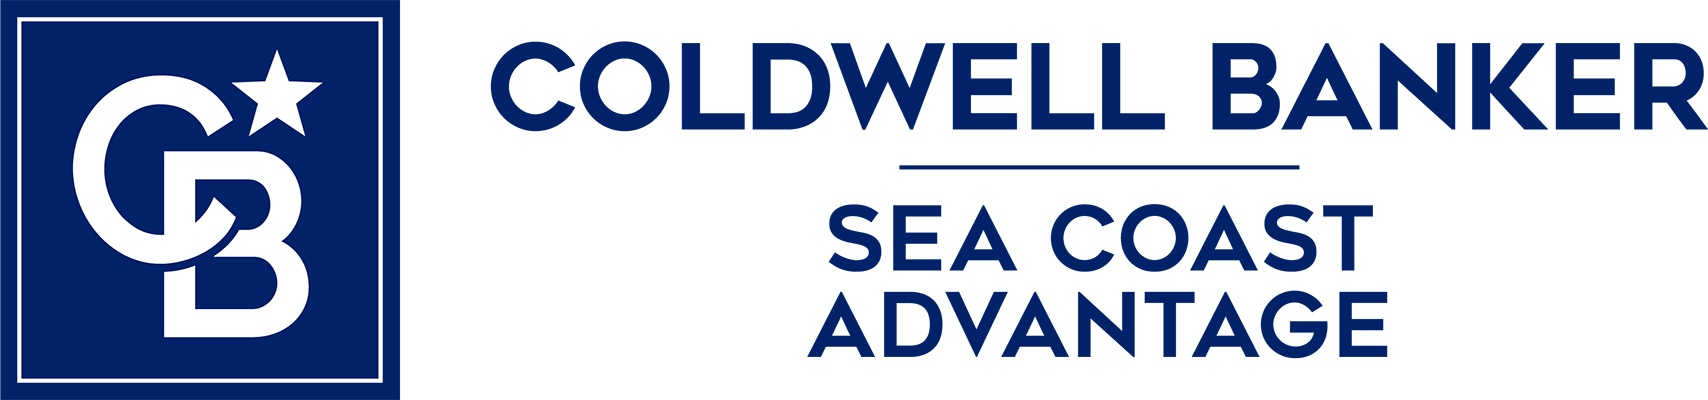 Brenda Bokano - Coldwell Banker Sea Coast Advantage Realty